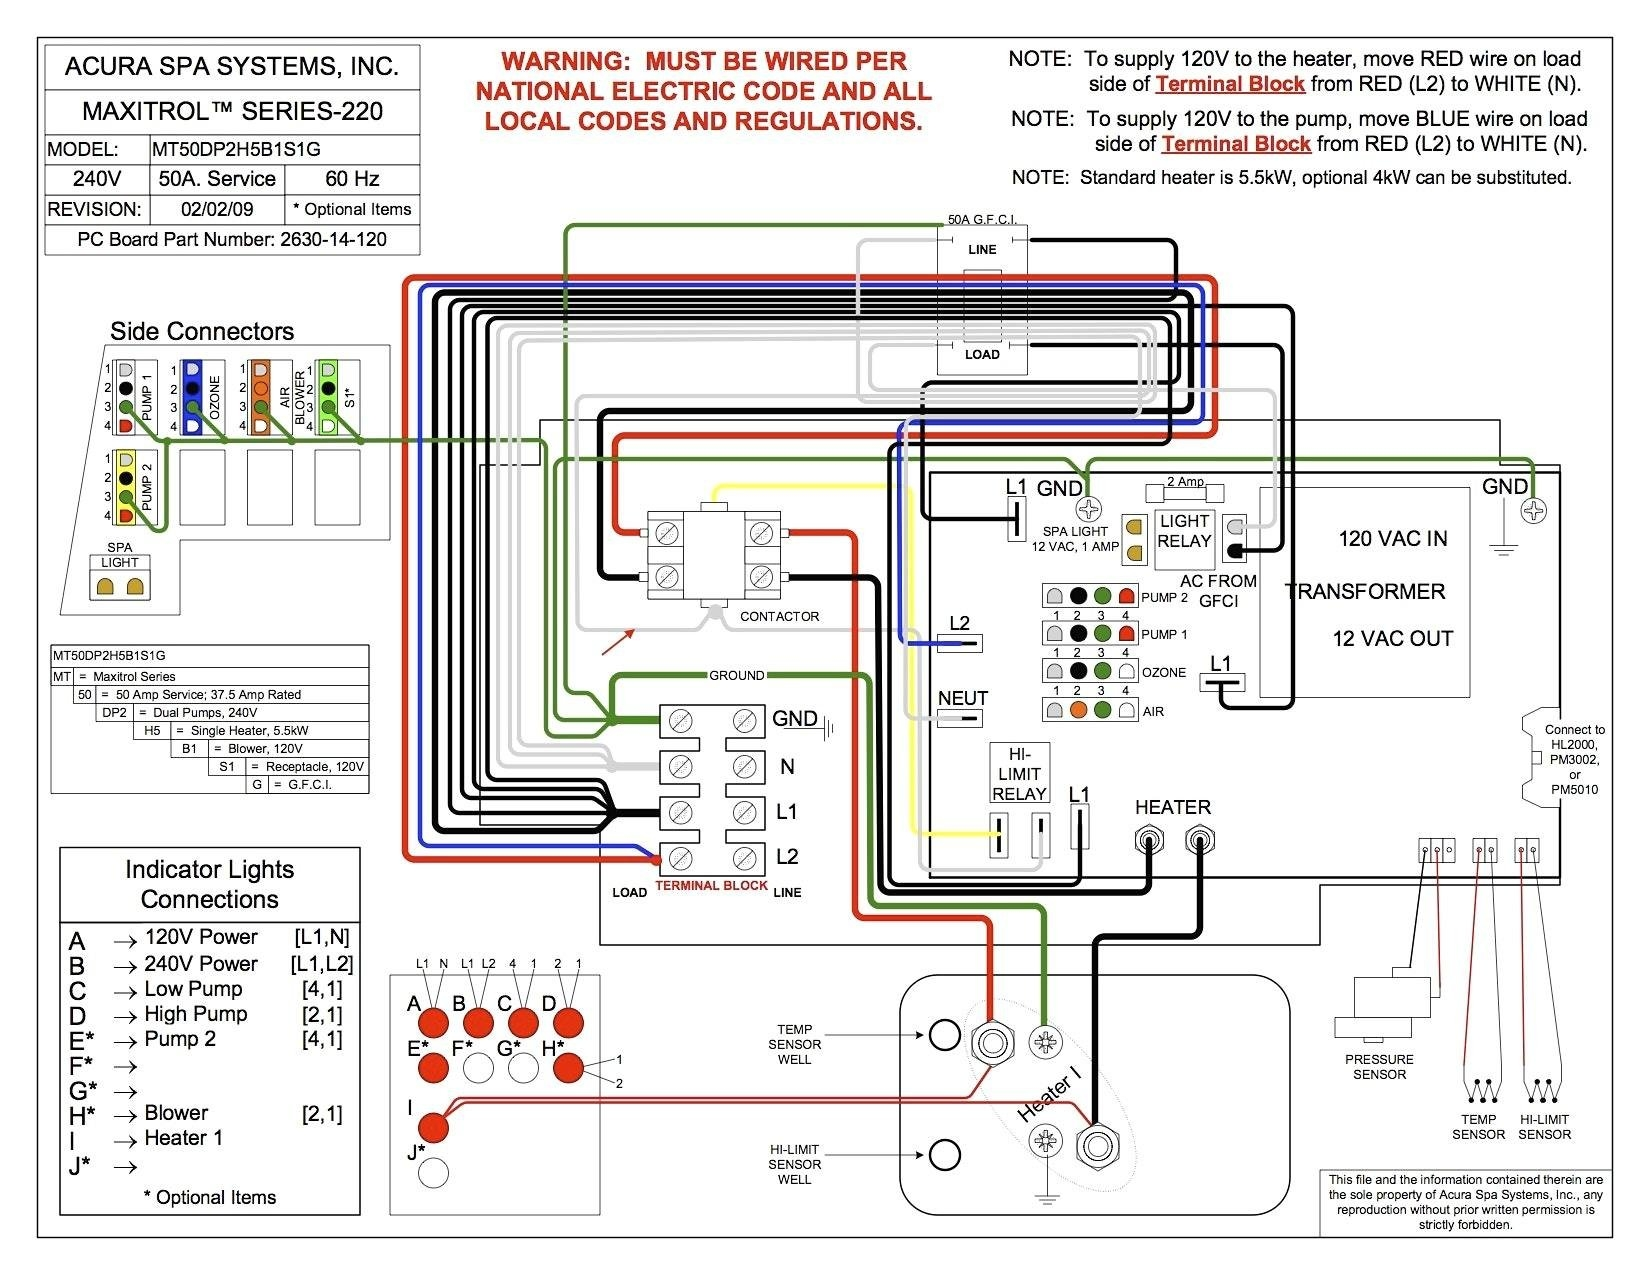 Hot Tub Wiring Schematic | Free Wiring Diagram